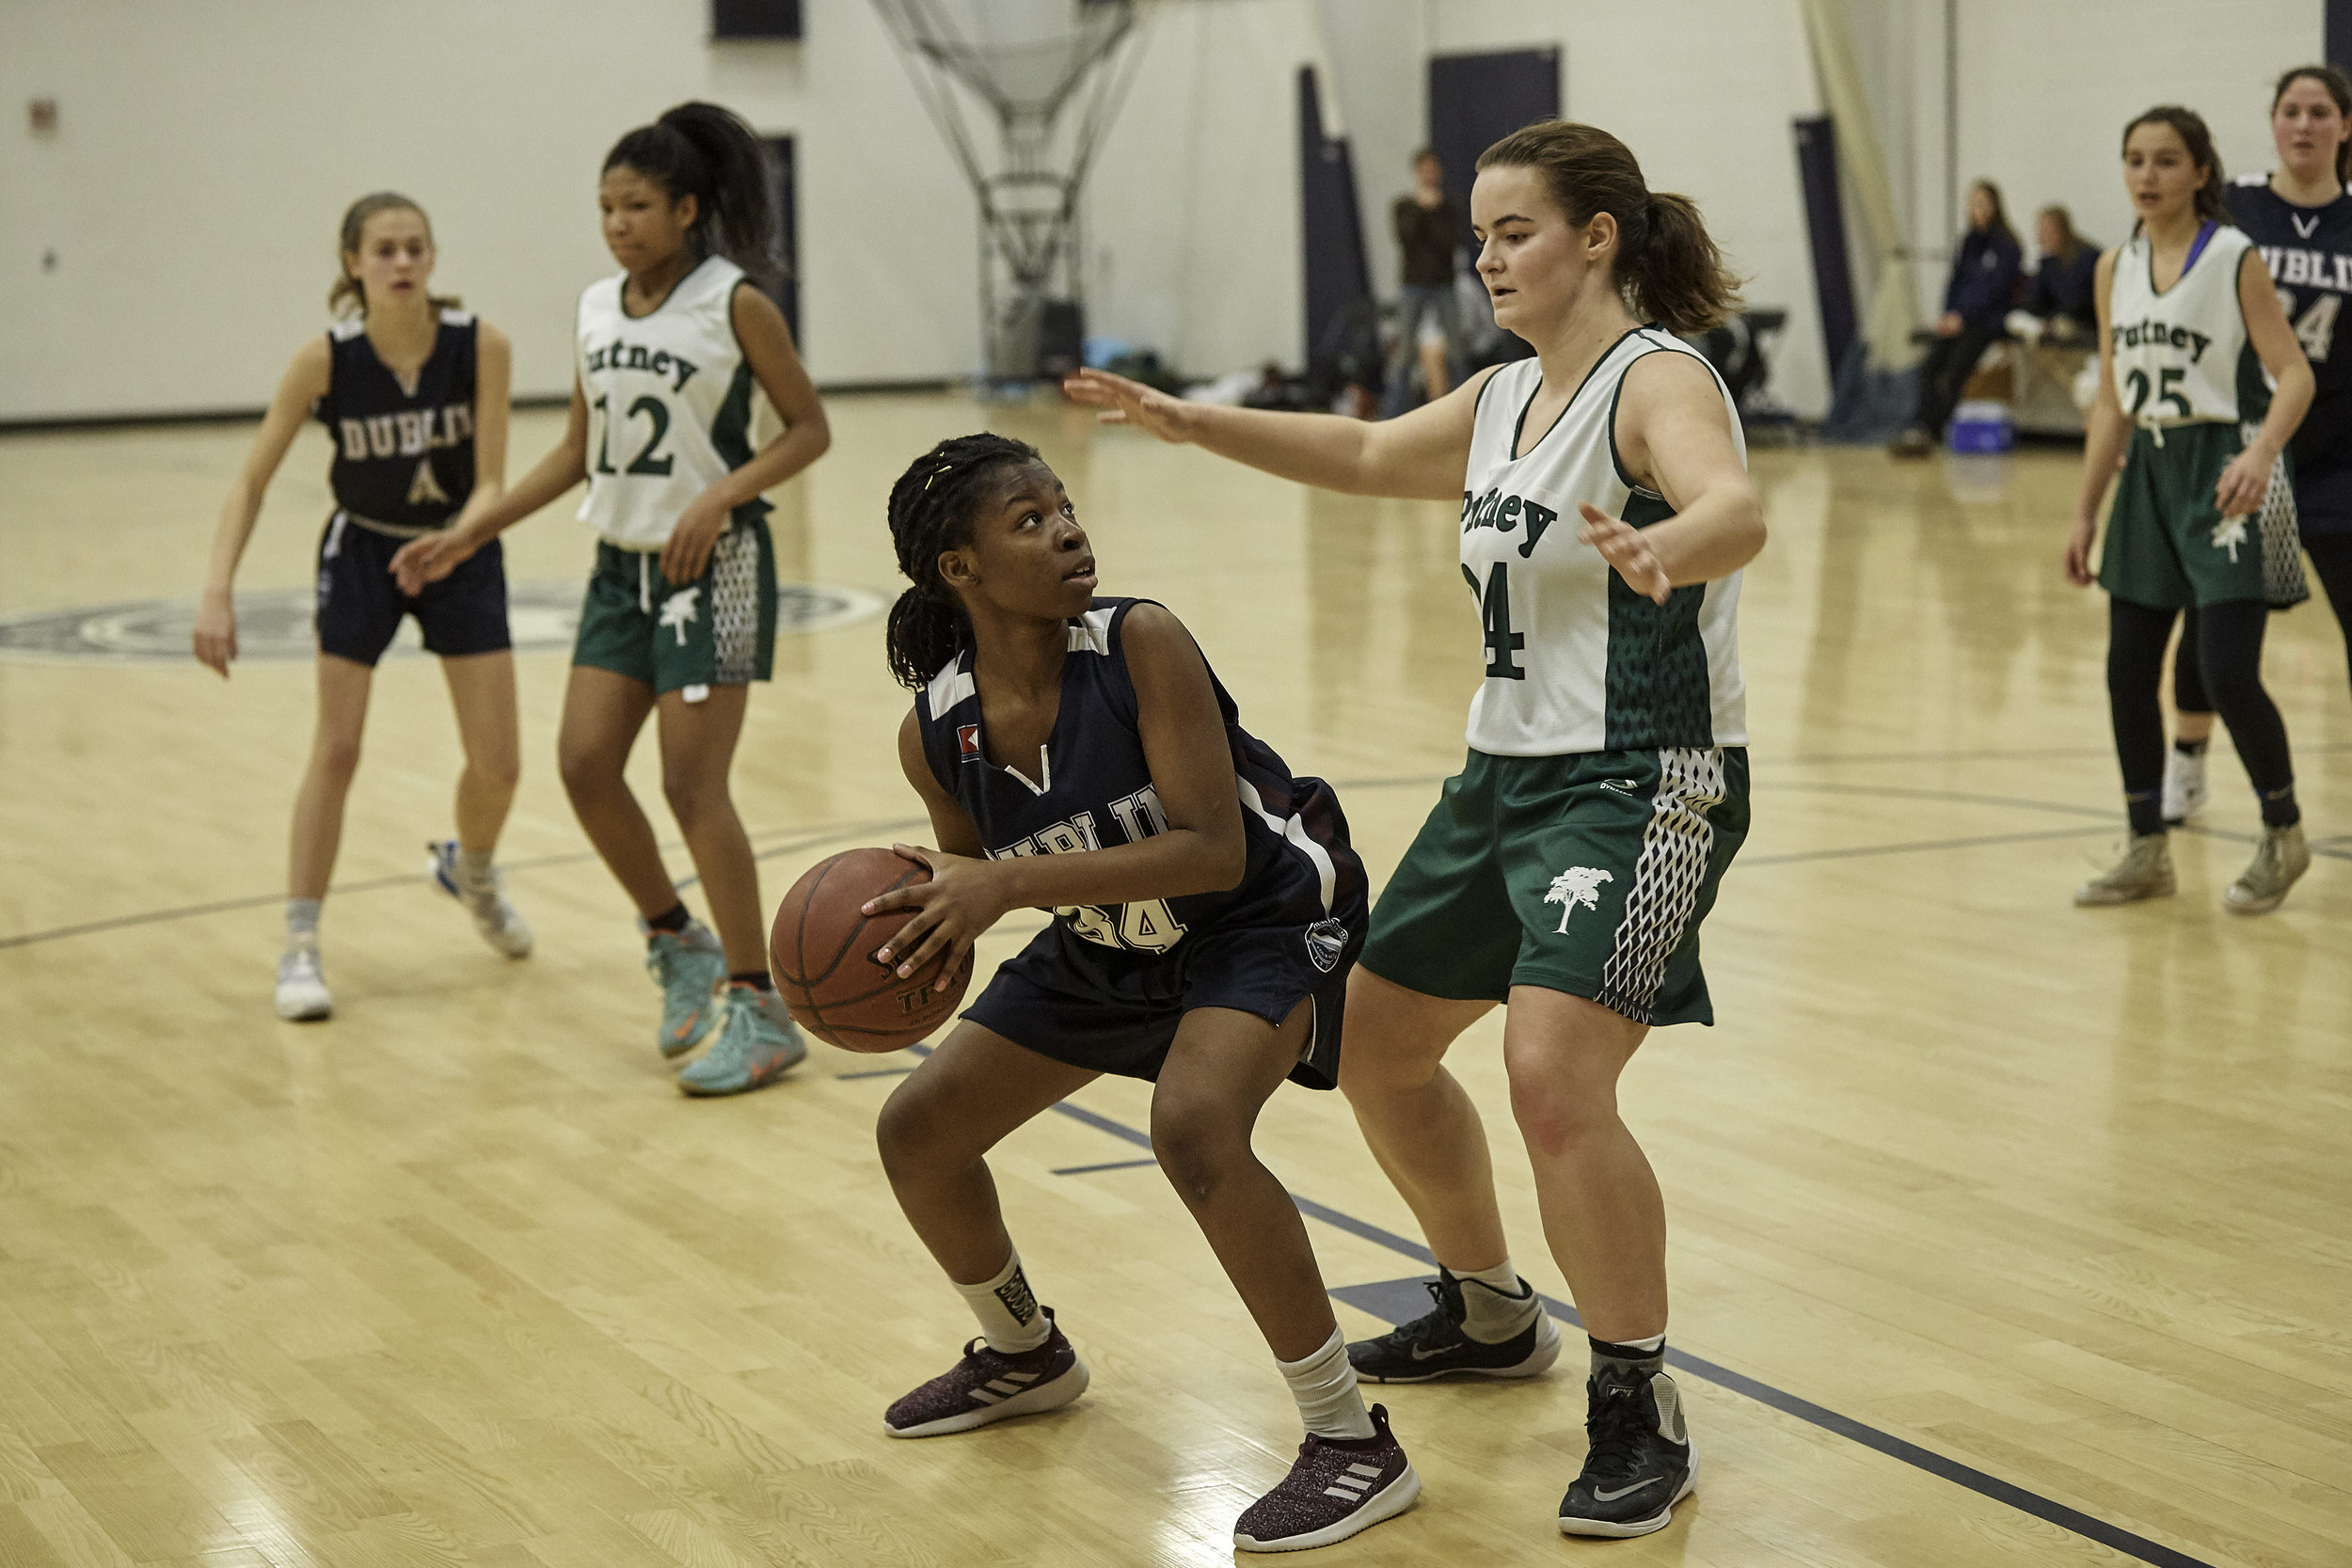 Basketball vs Putney School, February 9, 2019 - 167501.jpg